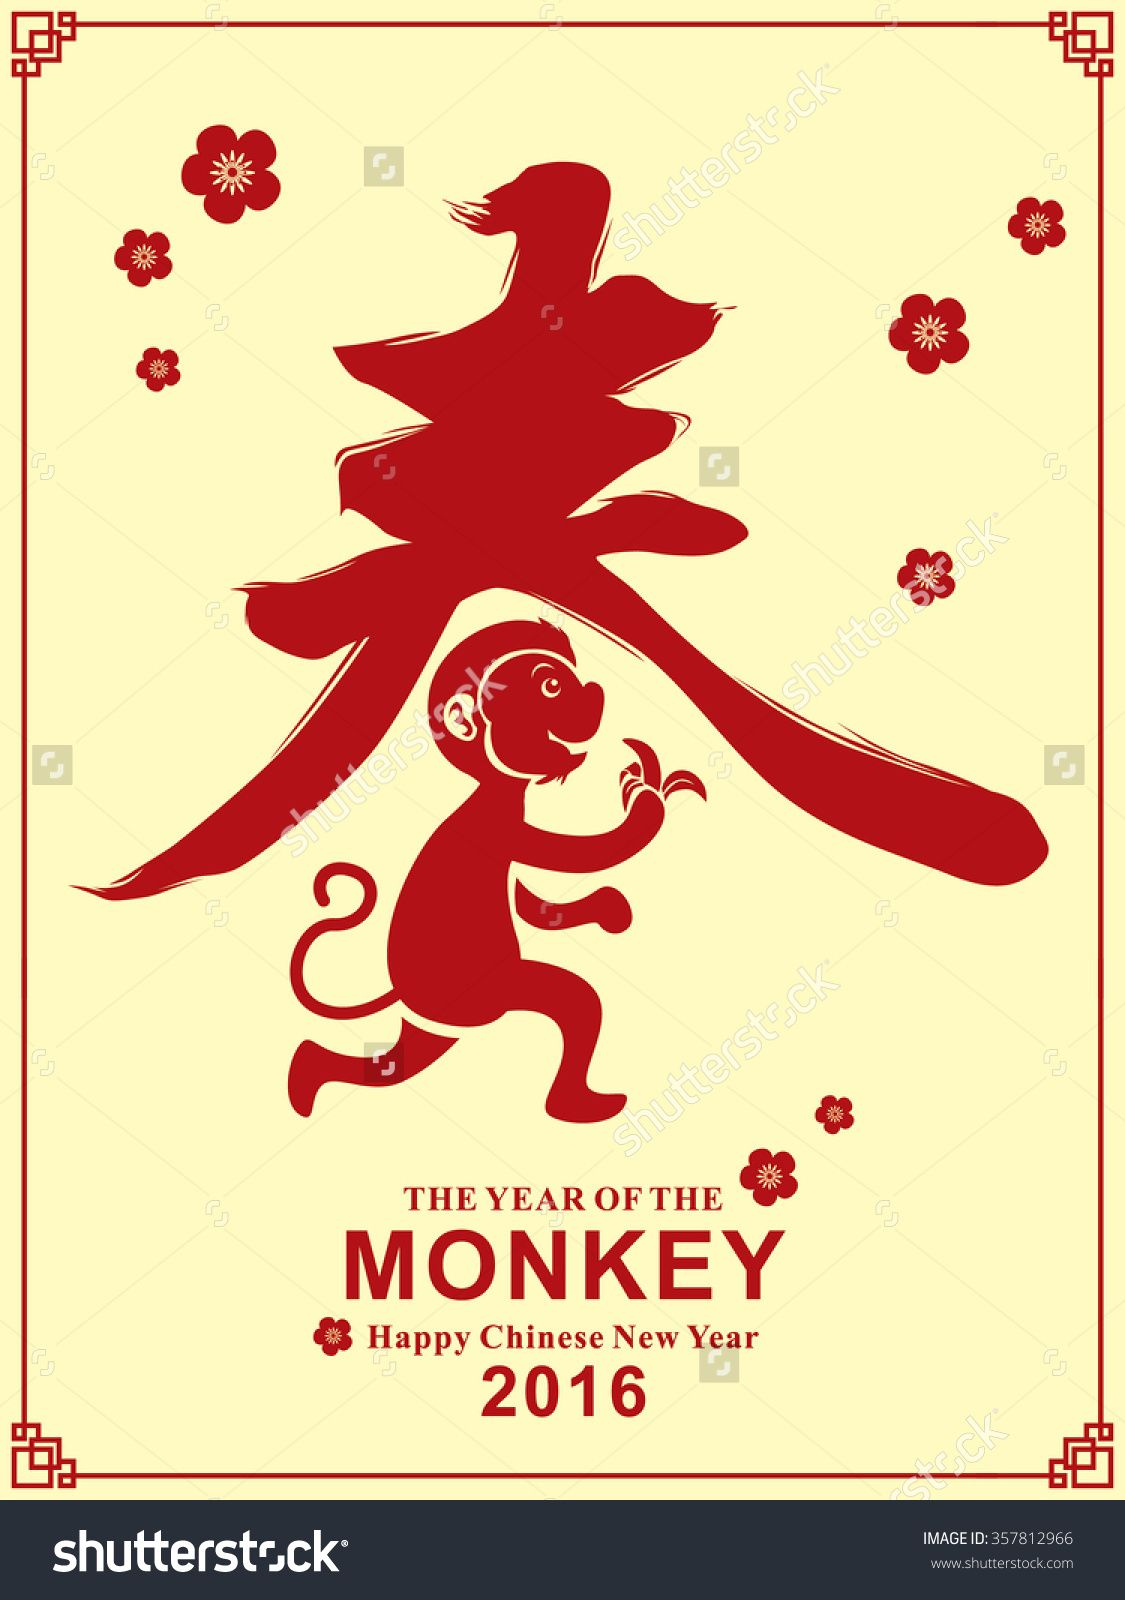 Korean poster design - Vintage Chinese New Year Poster Design With Chinese Zodiac Monkey